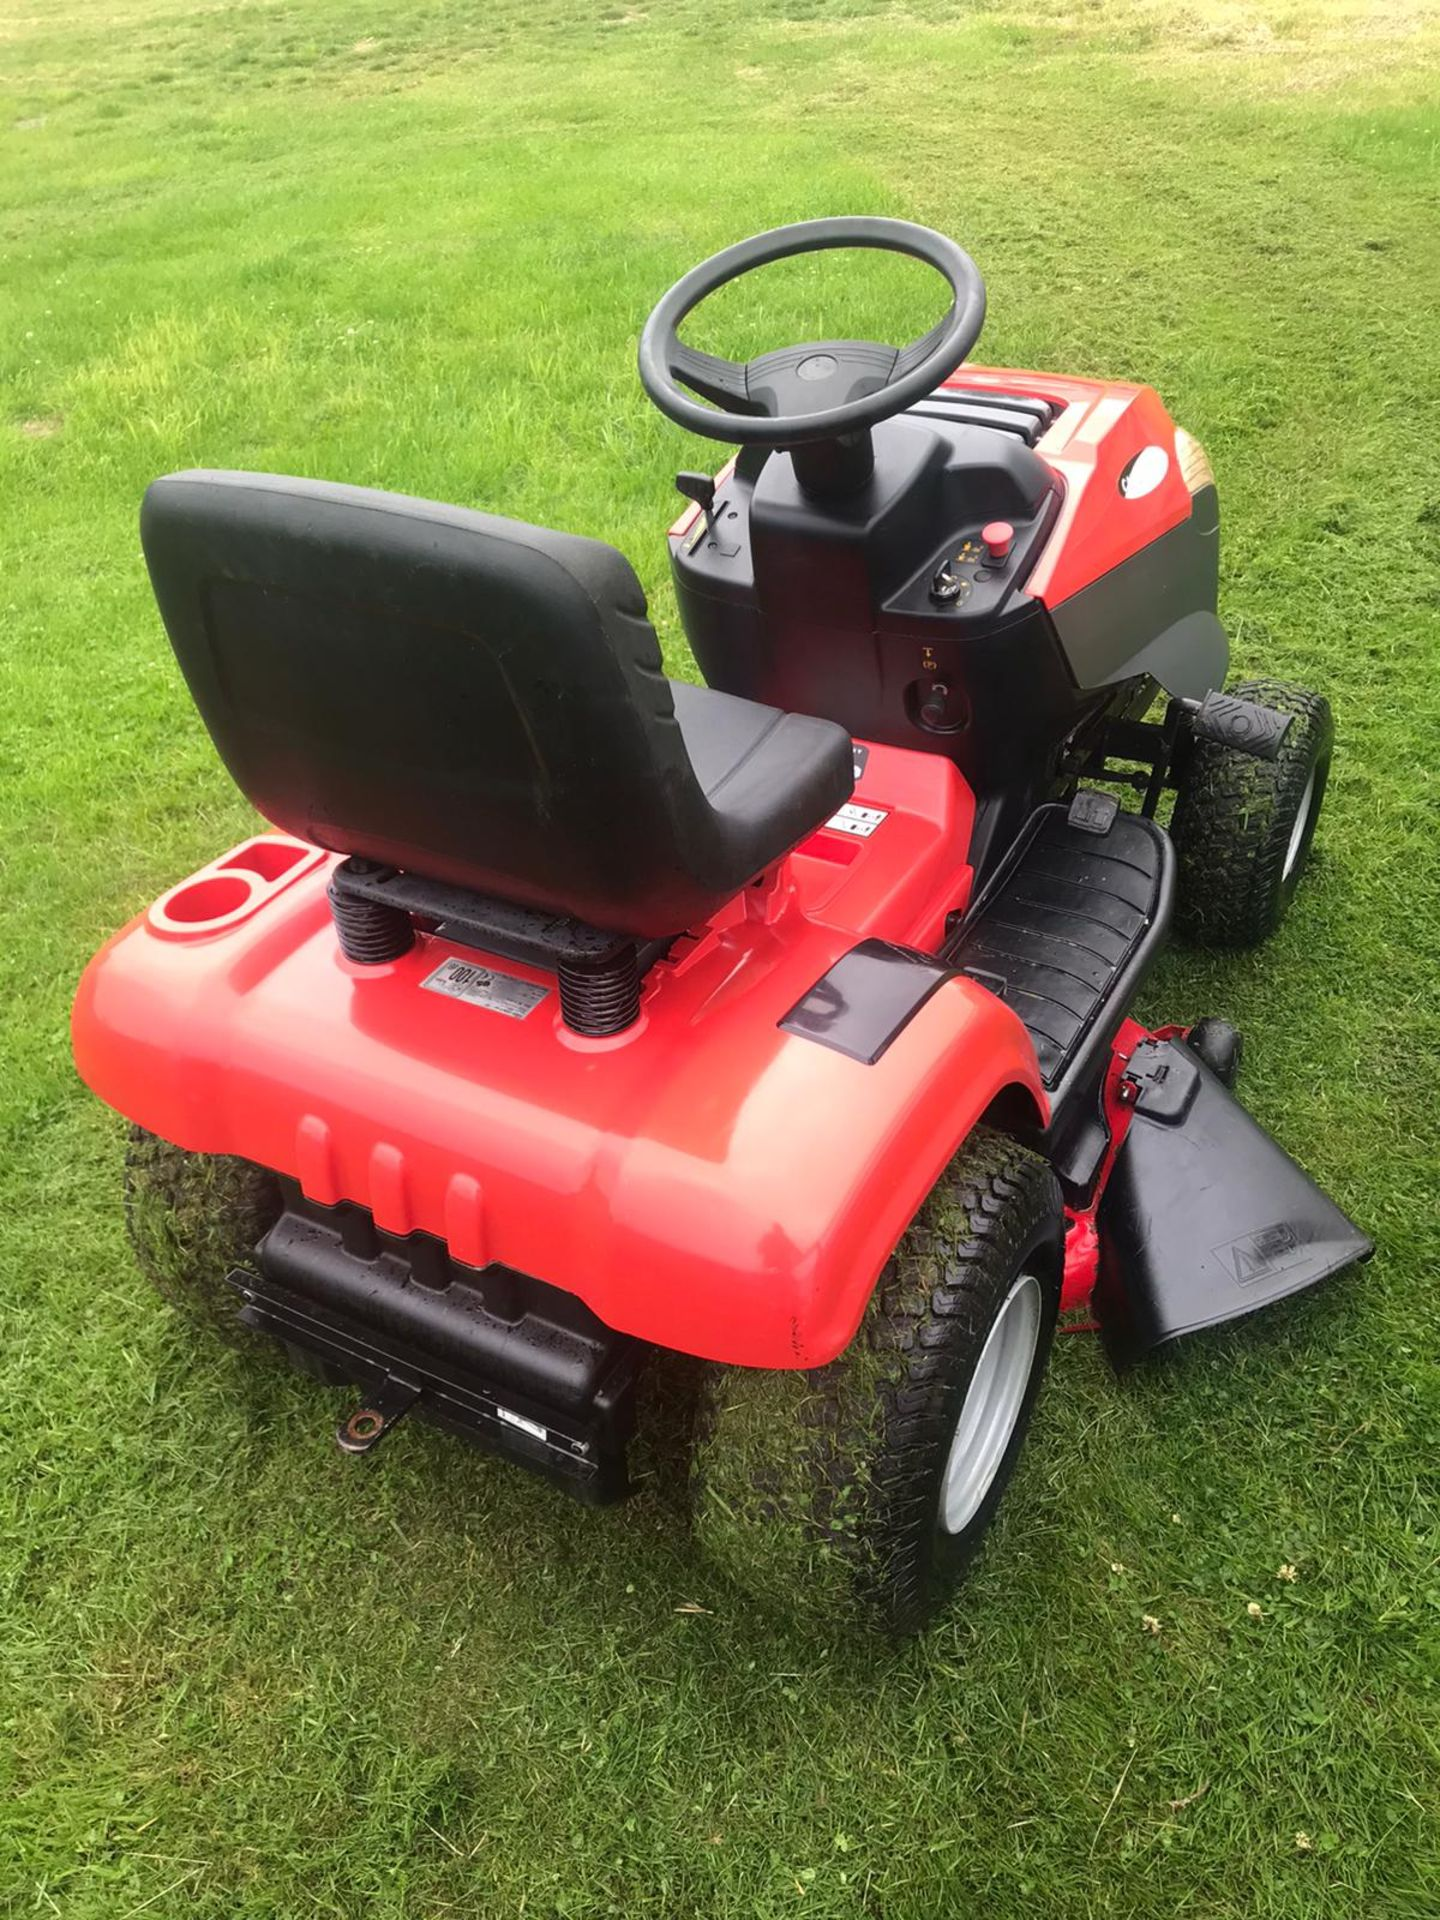 Lot 54 - CASTLE GARDEN SDX 98 HYDRO RIDE ON MULCHER MOWER, RUNS, DRIVES AND CUTS, GREAT CONDITION *NO VAT*